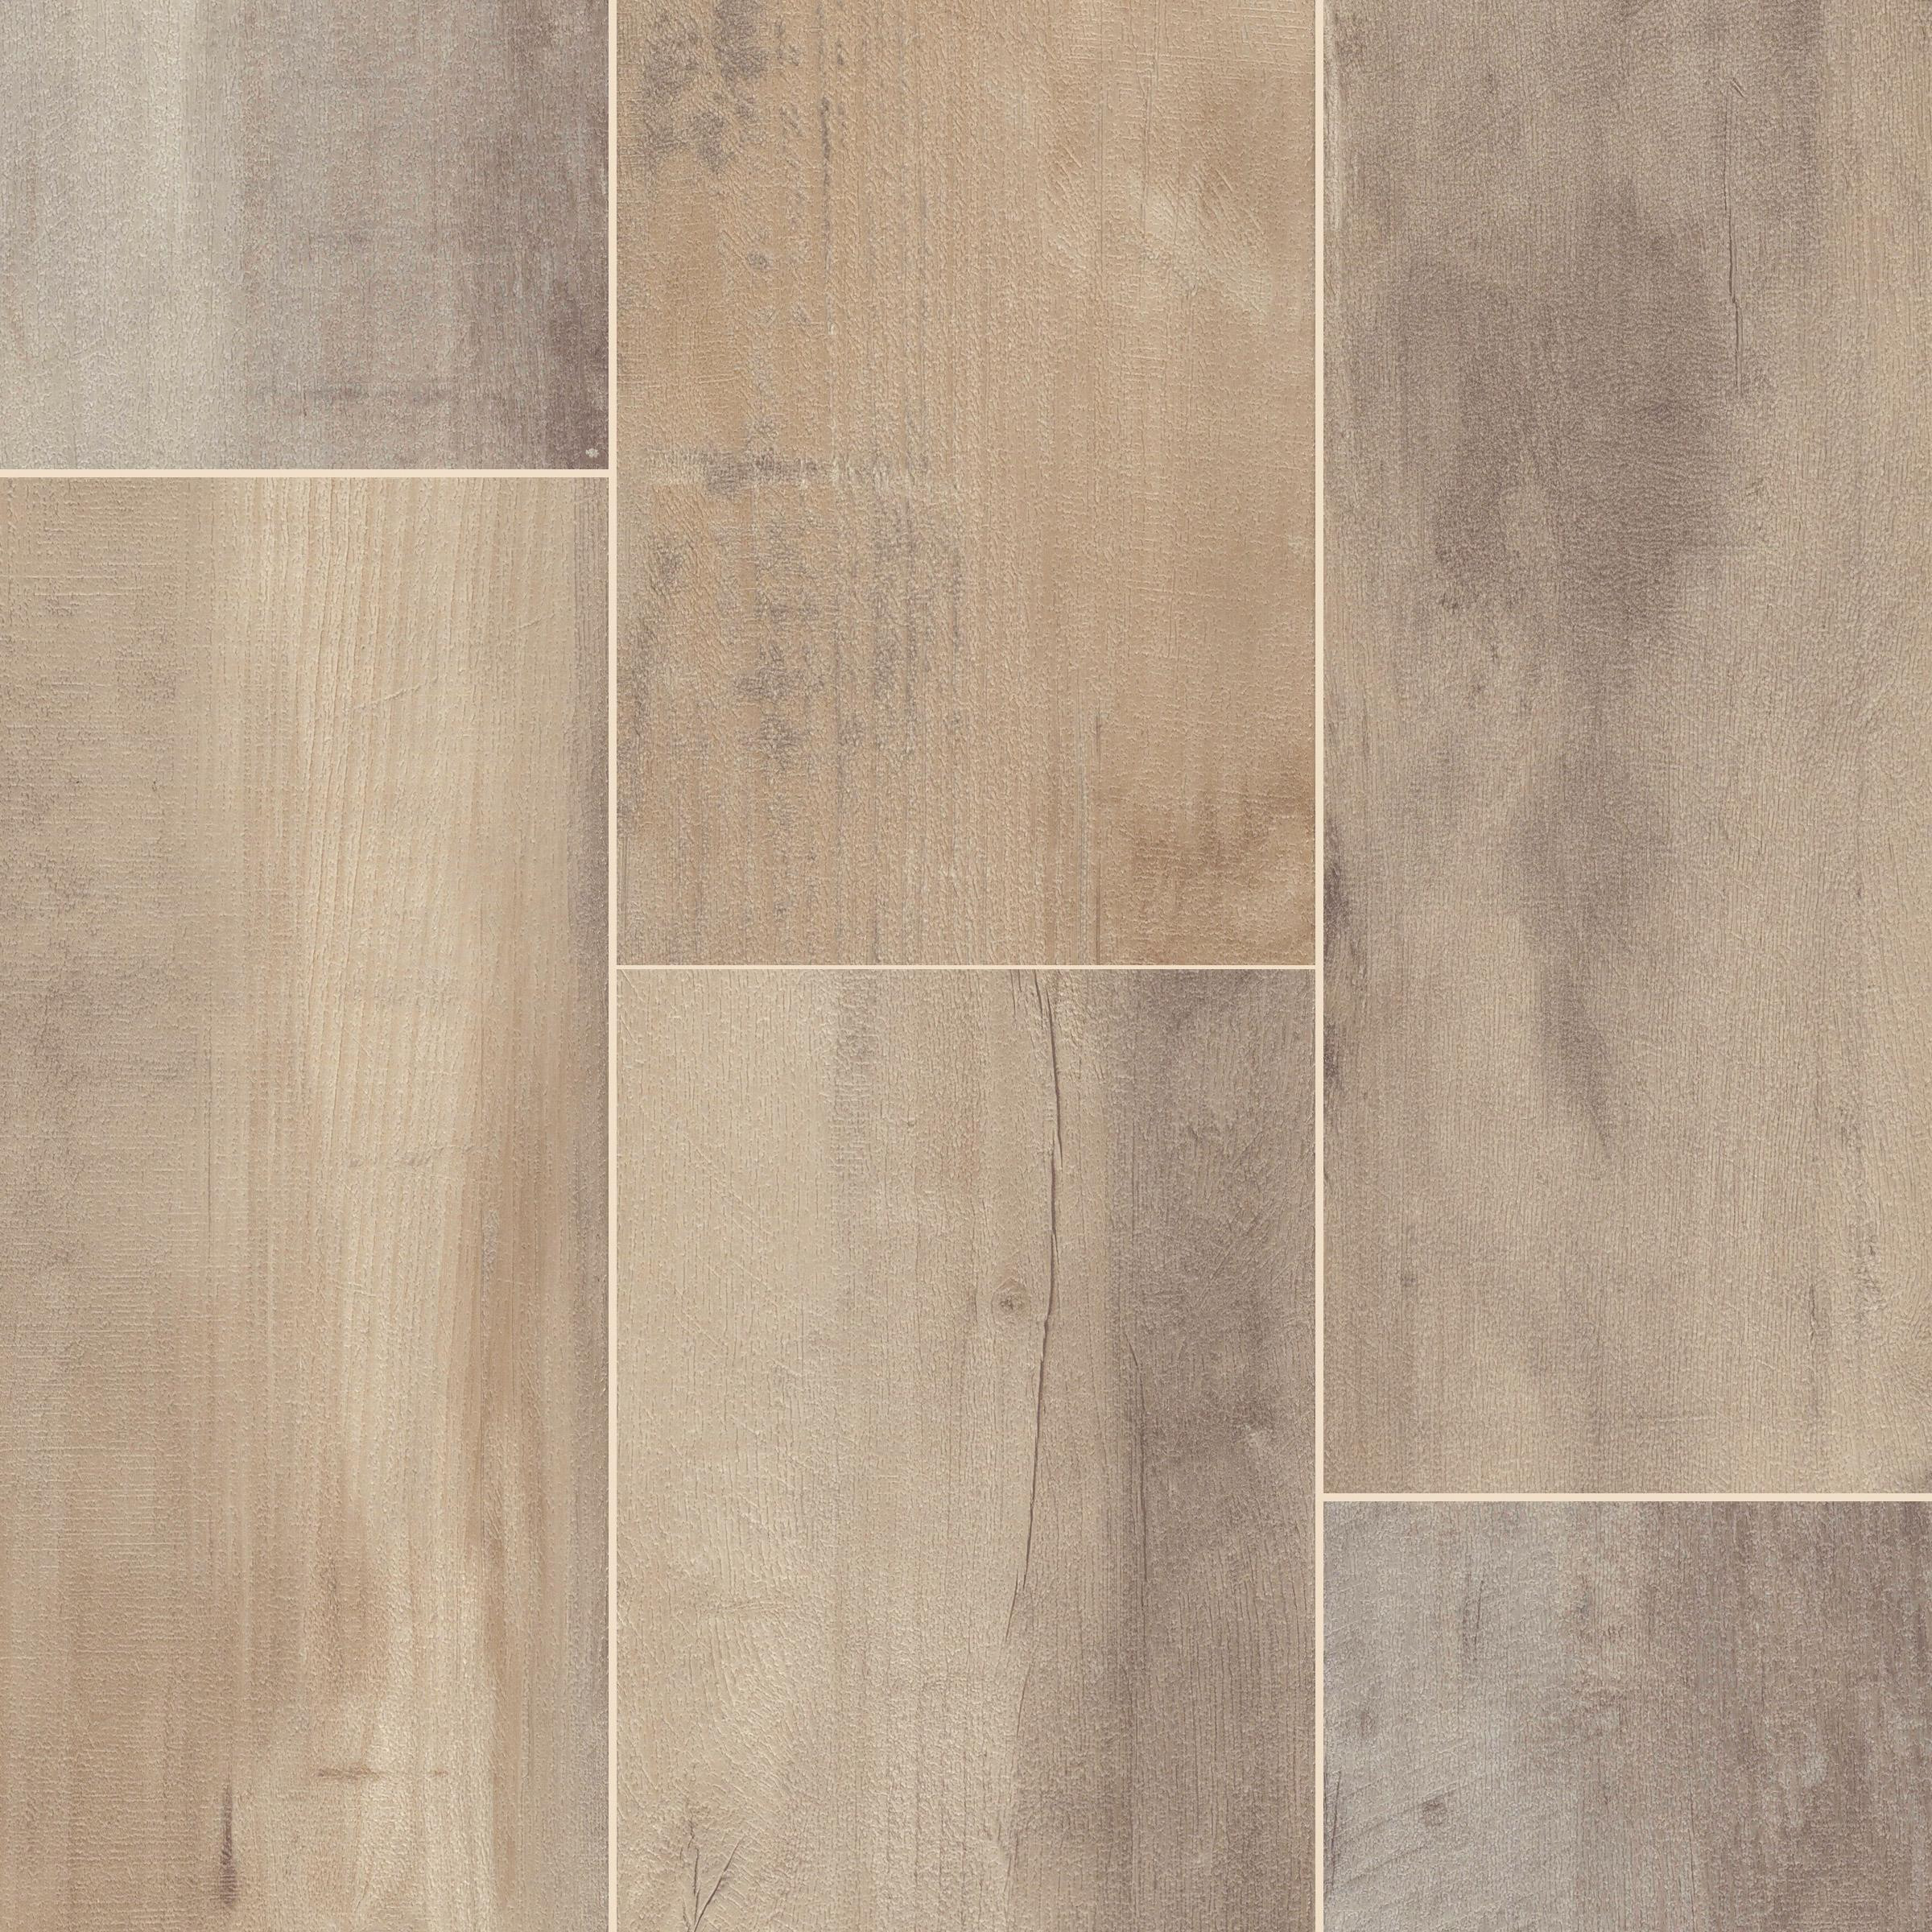 mohawk hardwood floor cleaner of mohawk frosted blush 8 78 wide glue down luxury vinyl plank flooring throughout 321 8 78 x 70 55 approved